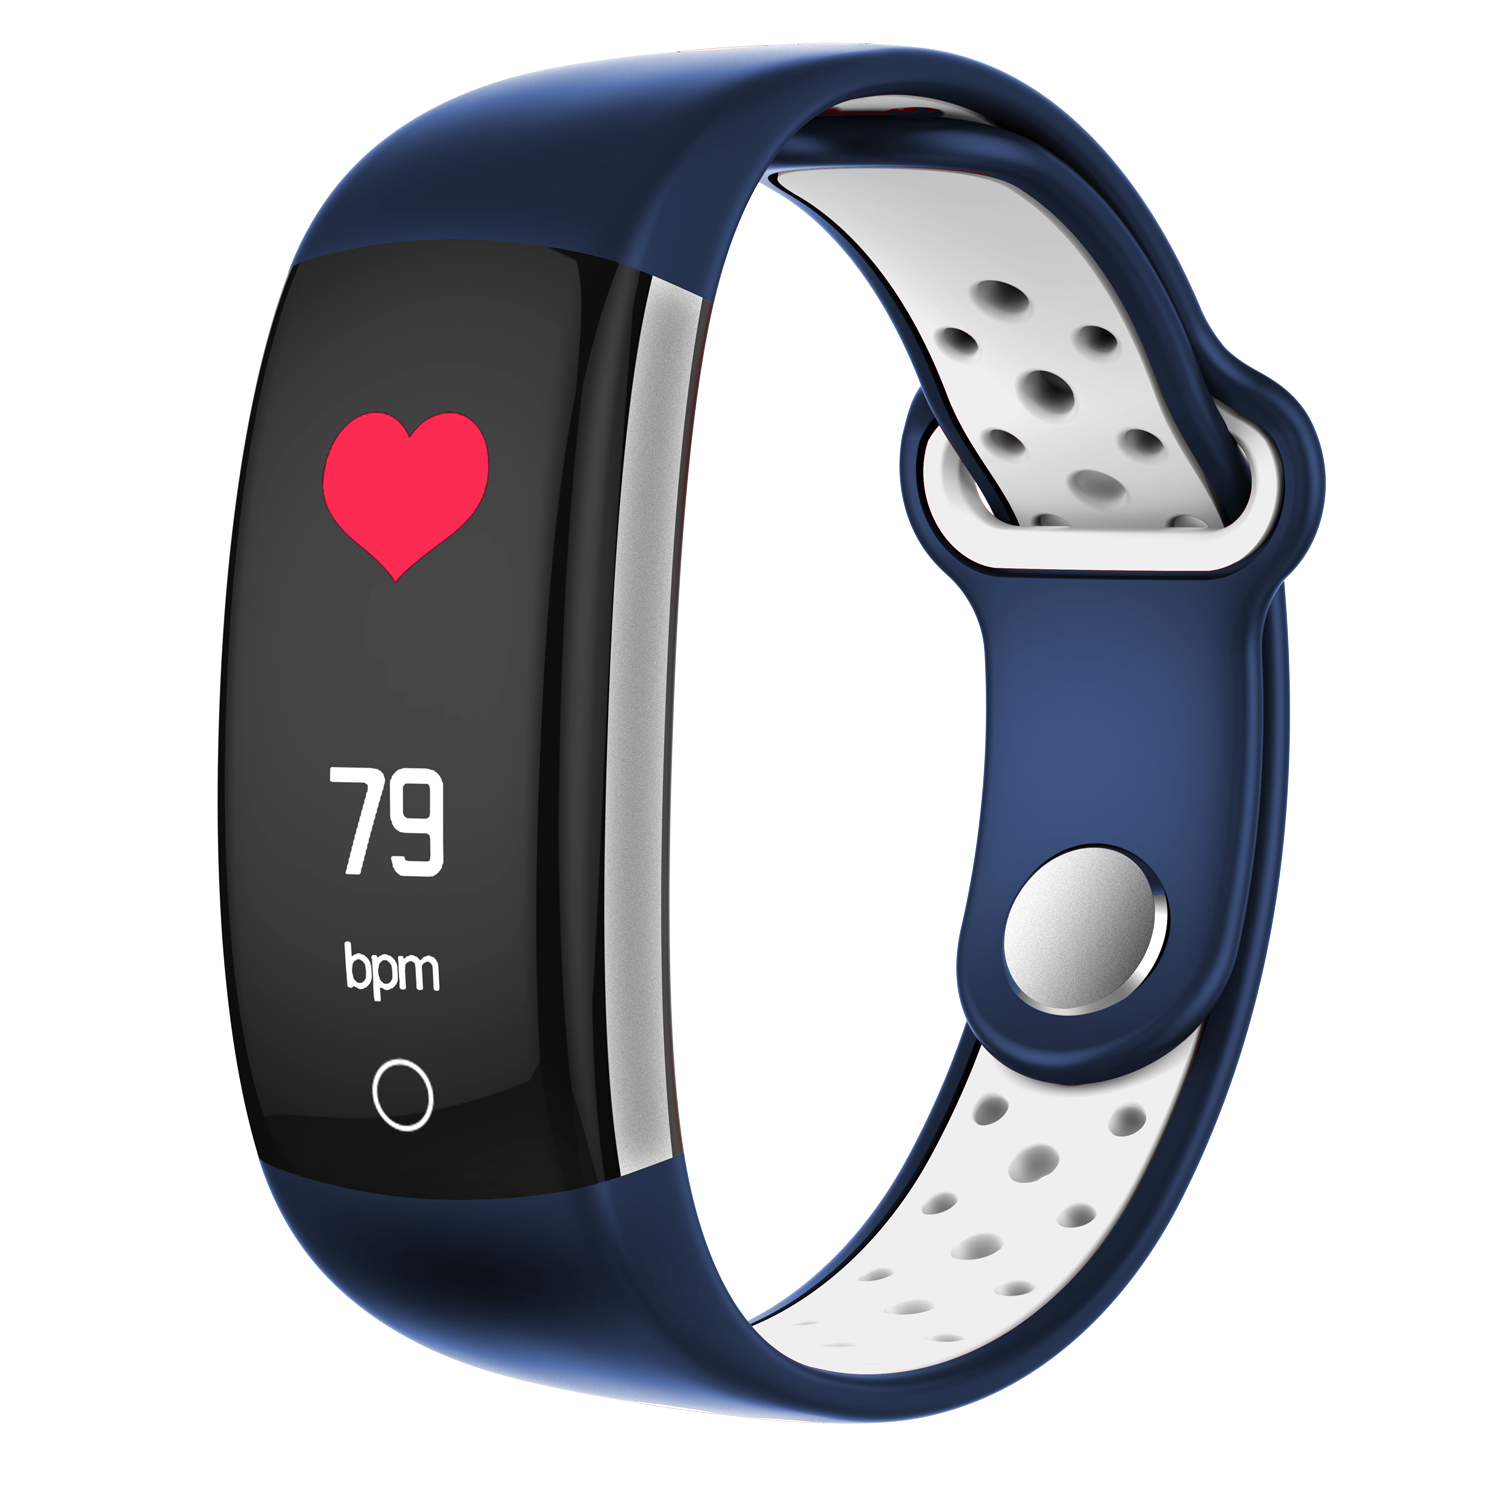 Wholesale Q6-White Bluetooth Fitness Tracker - Heartrate Monitor, Pedometer, Calorie Counter, Notificaions, Calls, , 0.96 Inch Display Ip68